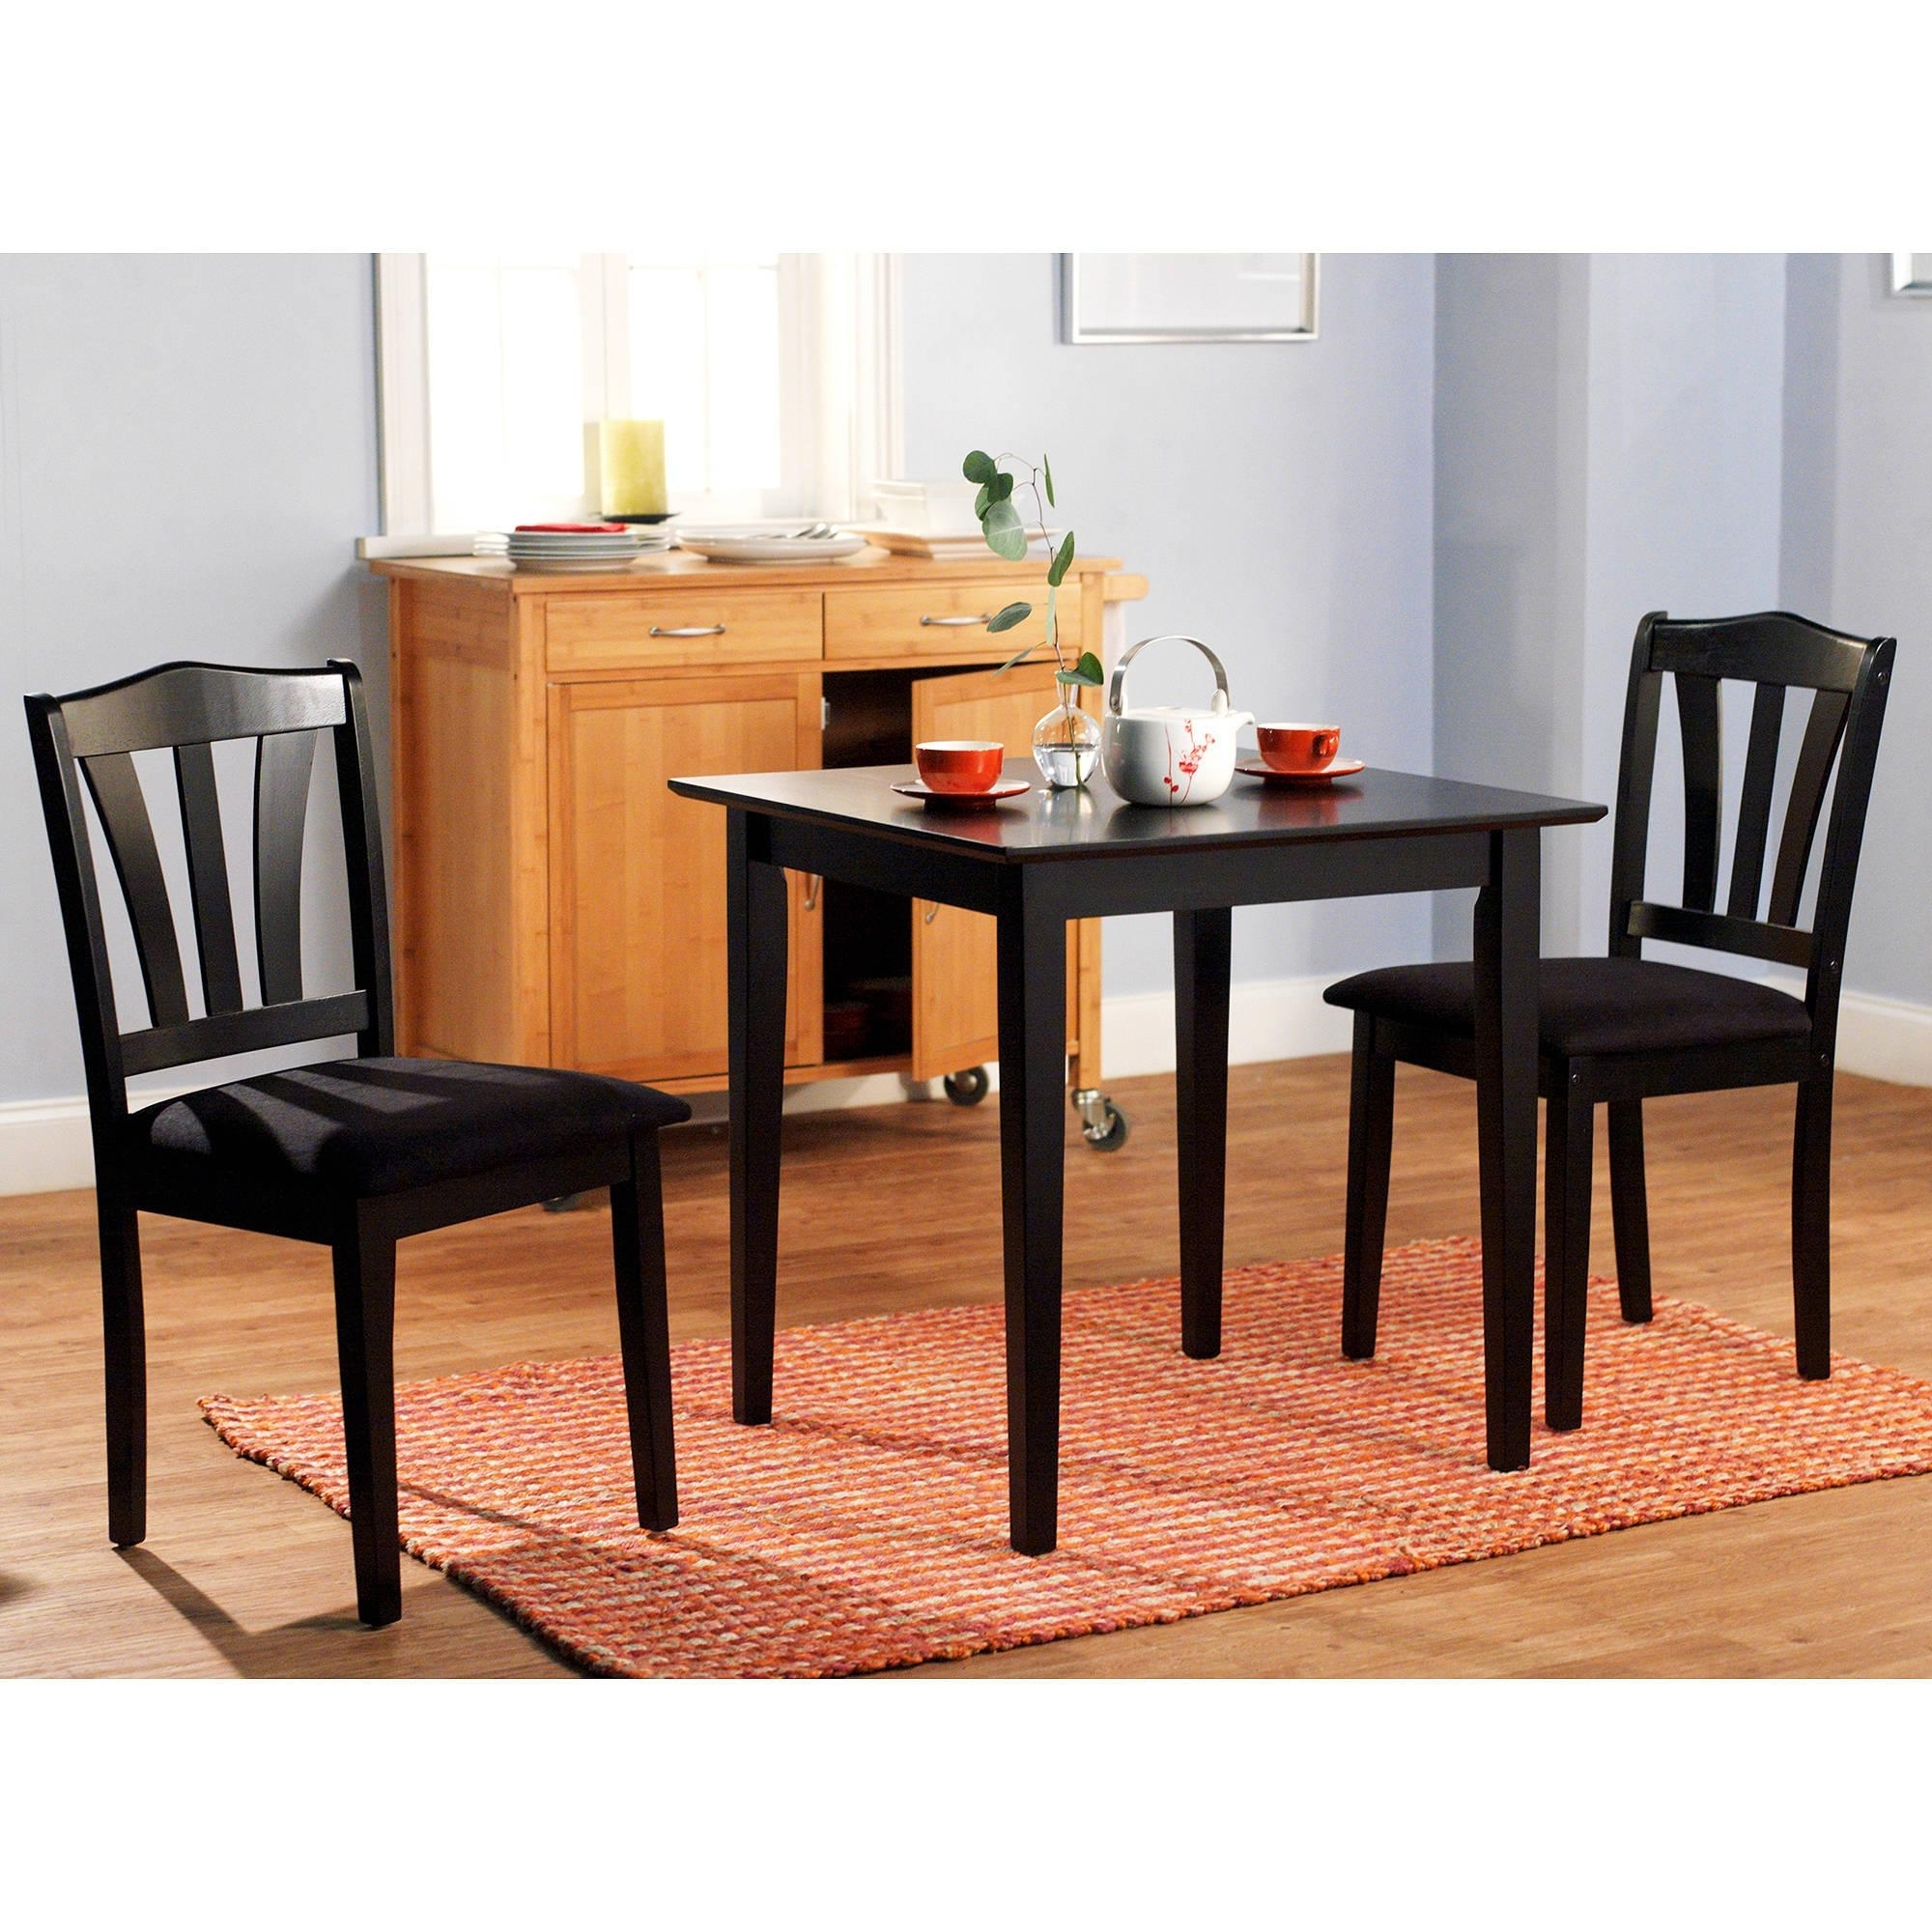 Most Current 3 Piece Dining Set Table 2 Chairs Kitchen Room Wood Furniture With Kitchen Dining Sets (View 10 of 25)